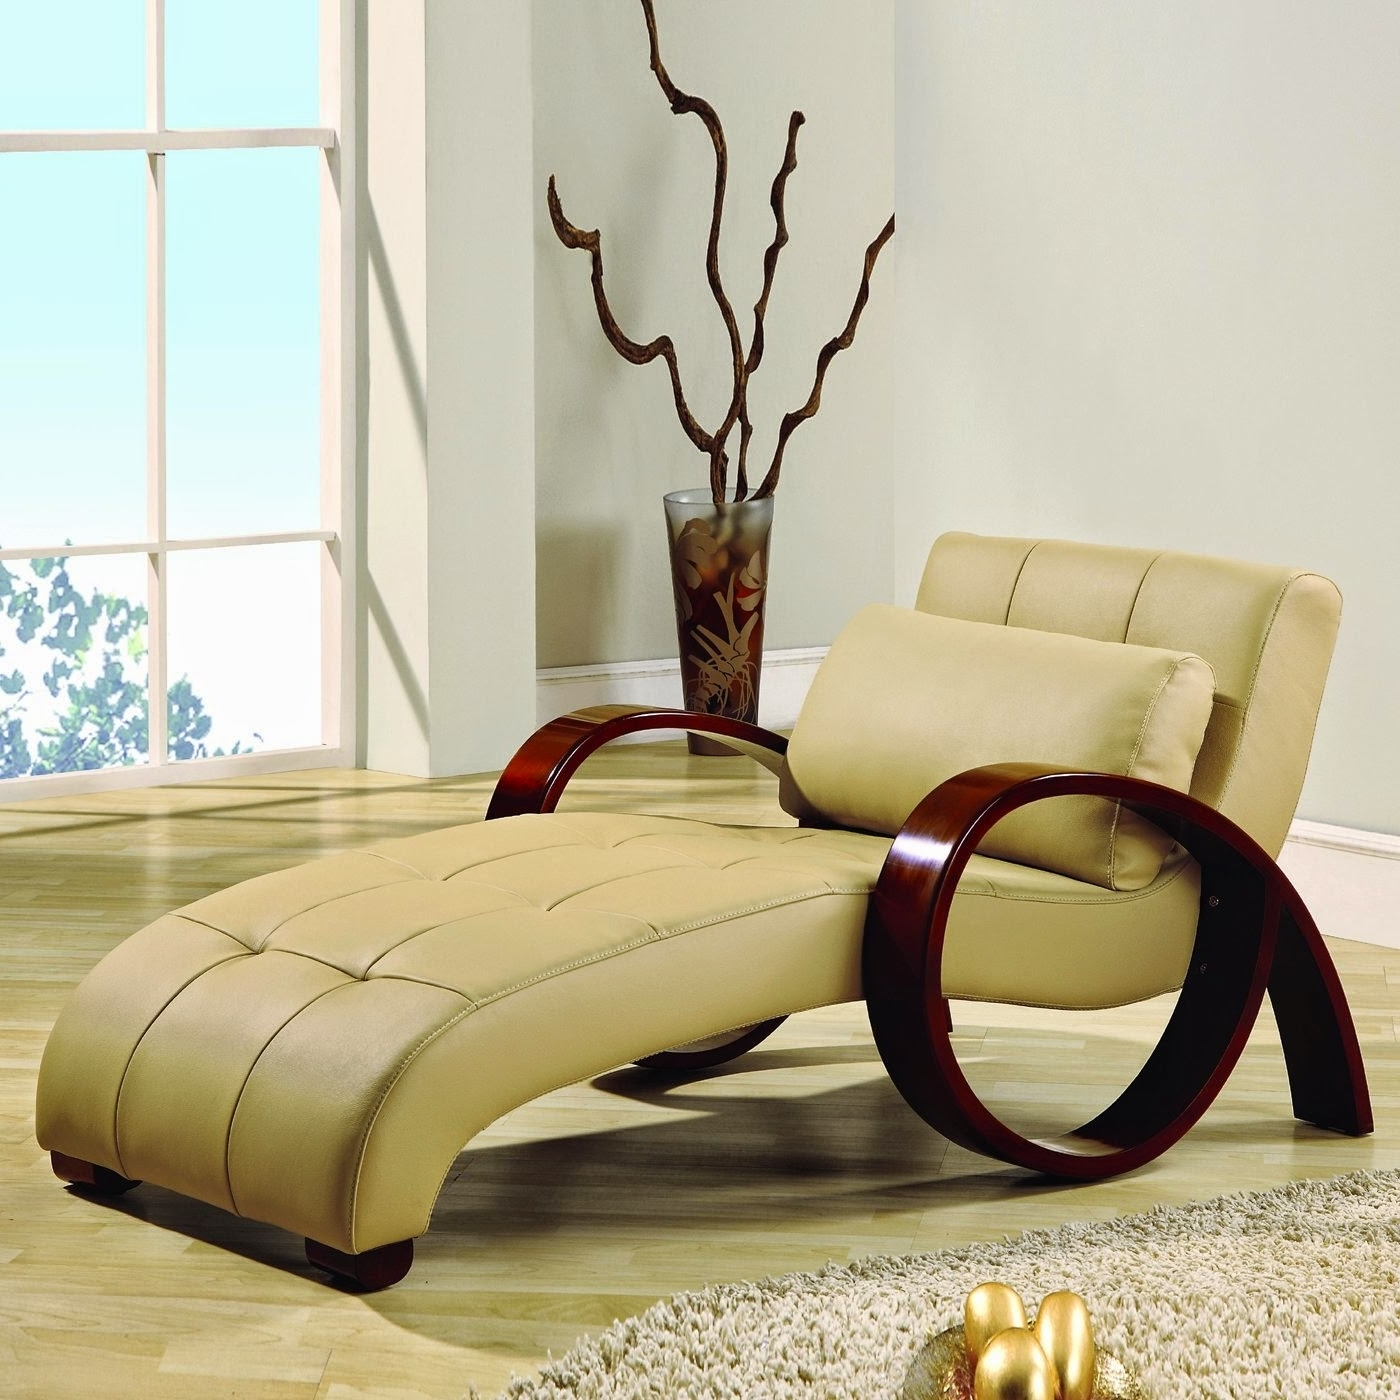 Enjoy Bedroom Chaise Lounge Chairs For Recent Chaise Lounges For Bedrooms (View 7 of 15)